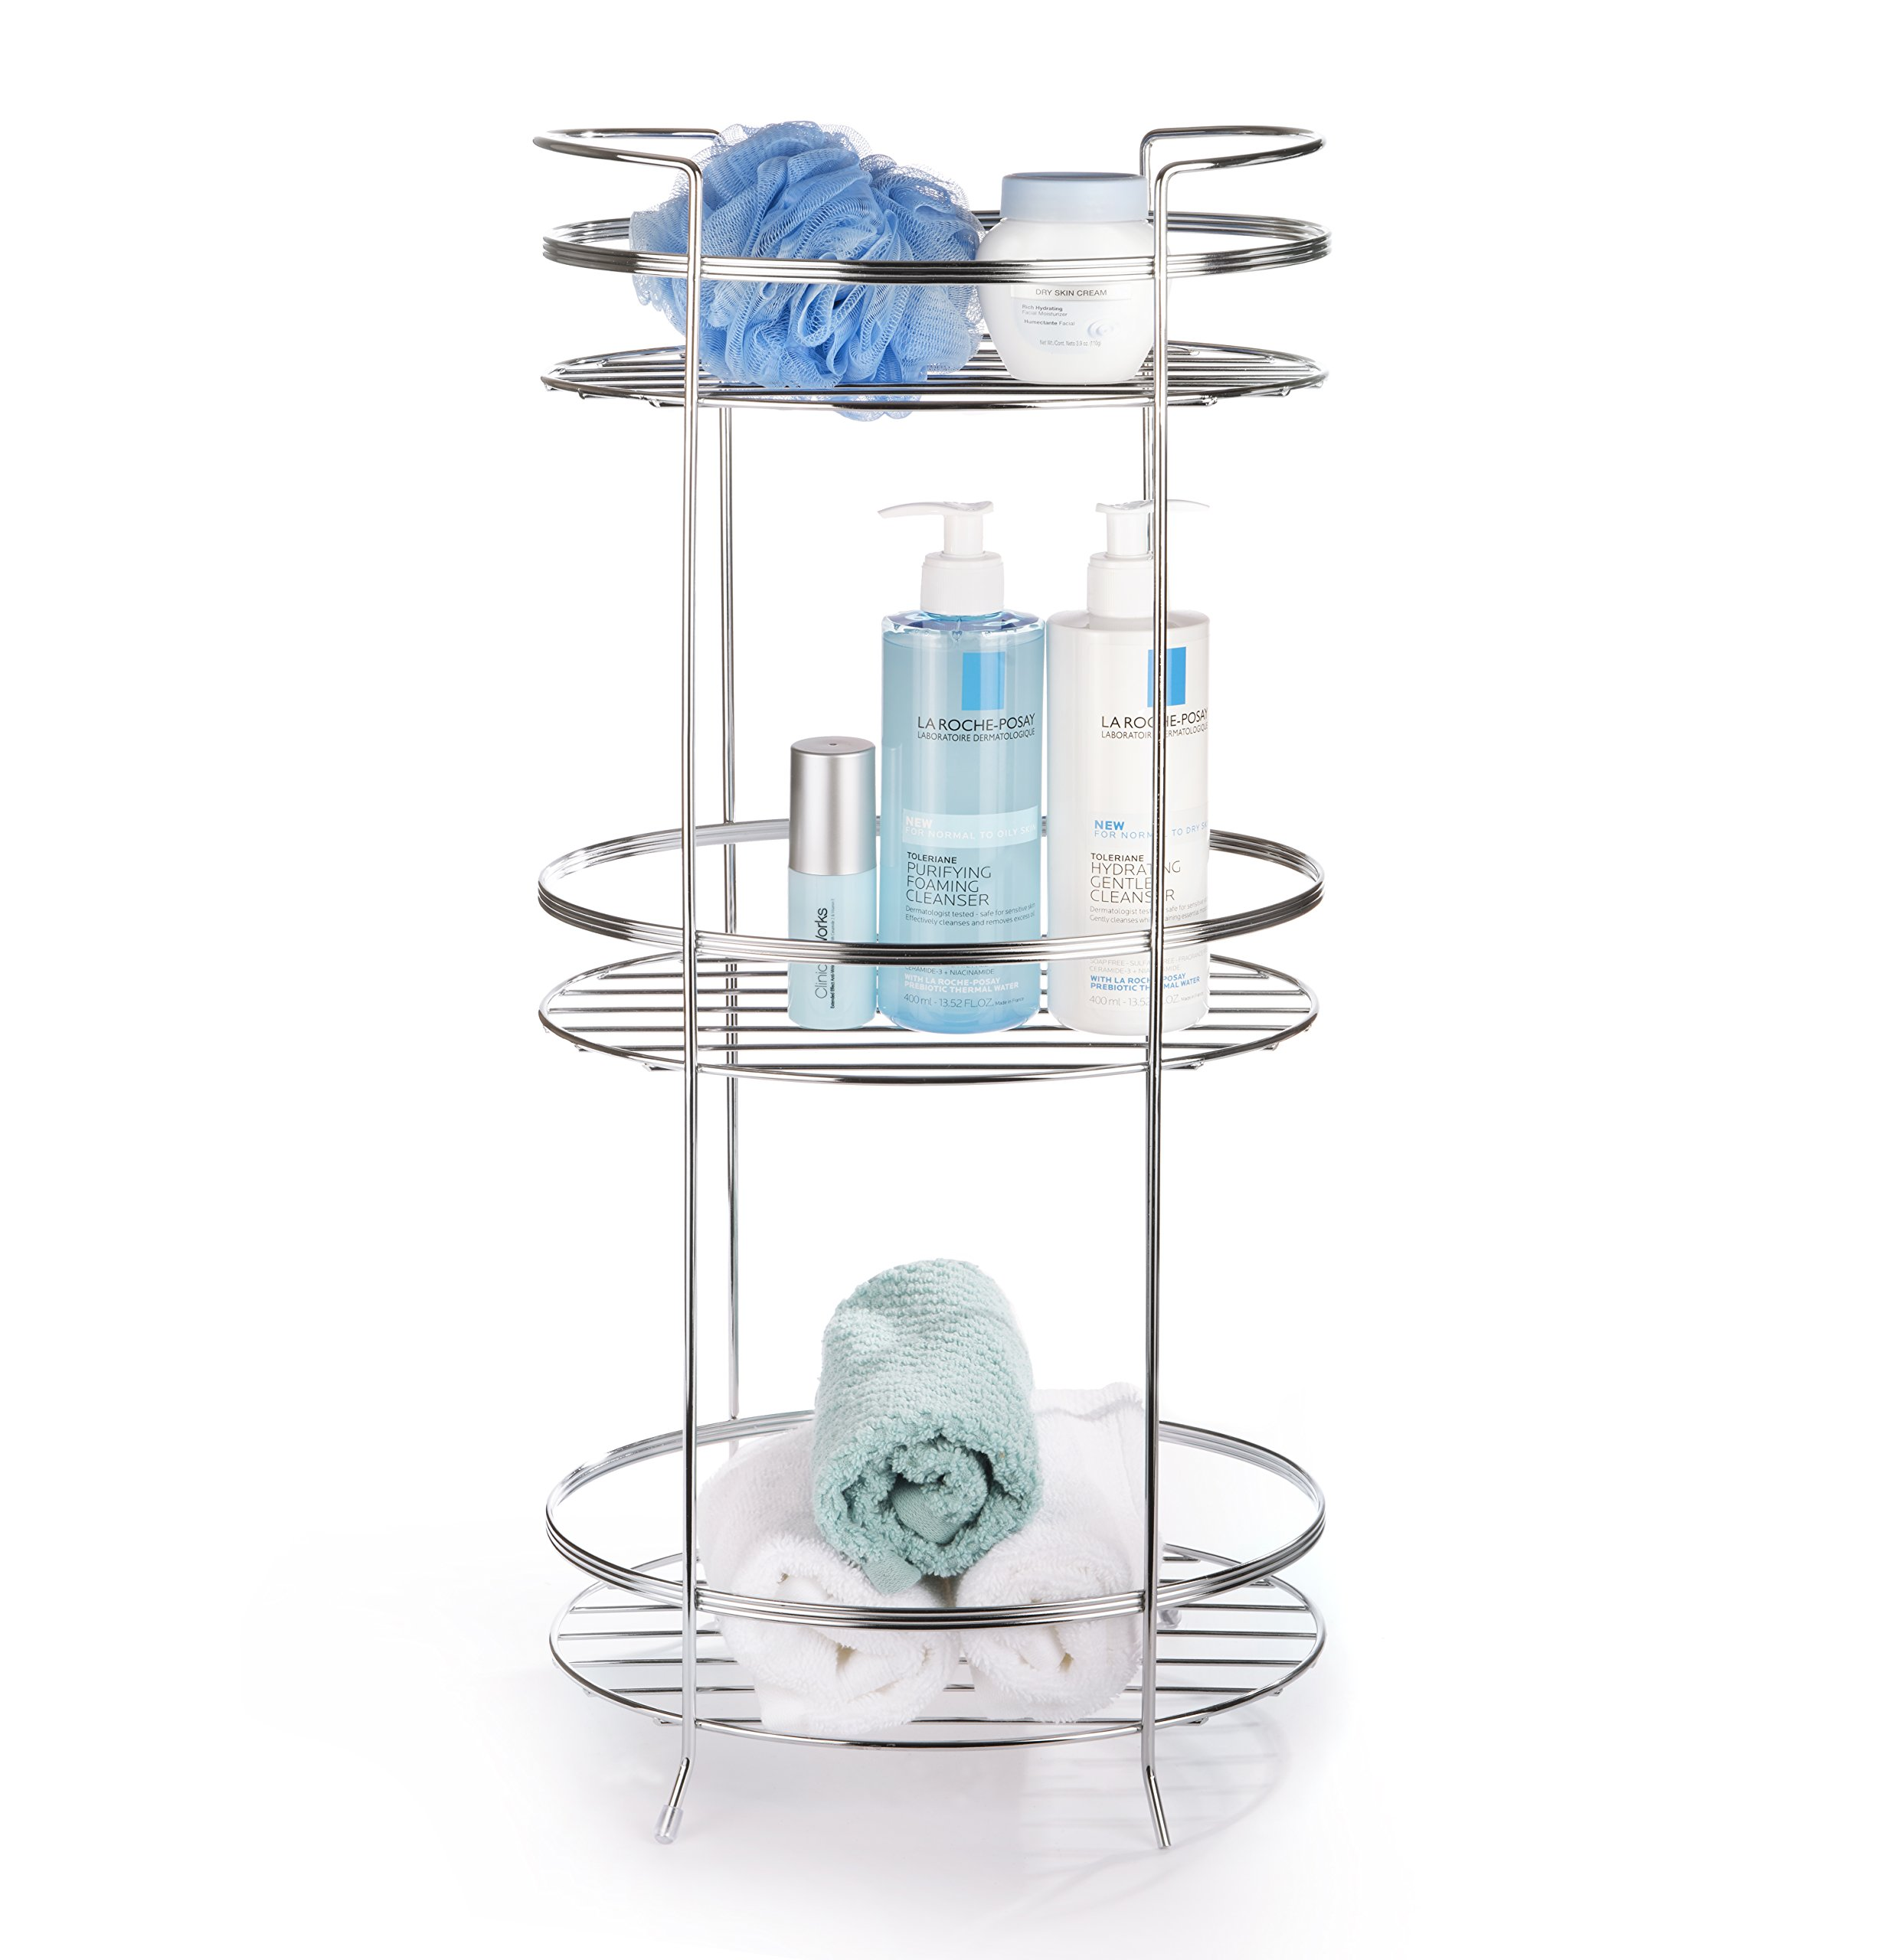 AMG and Enchante Accessories Free Standing Bathroom Spa Tower Storage Caddy, FC100005 CHR, Chrome